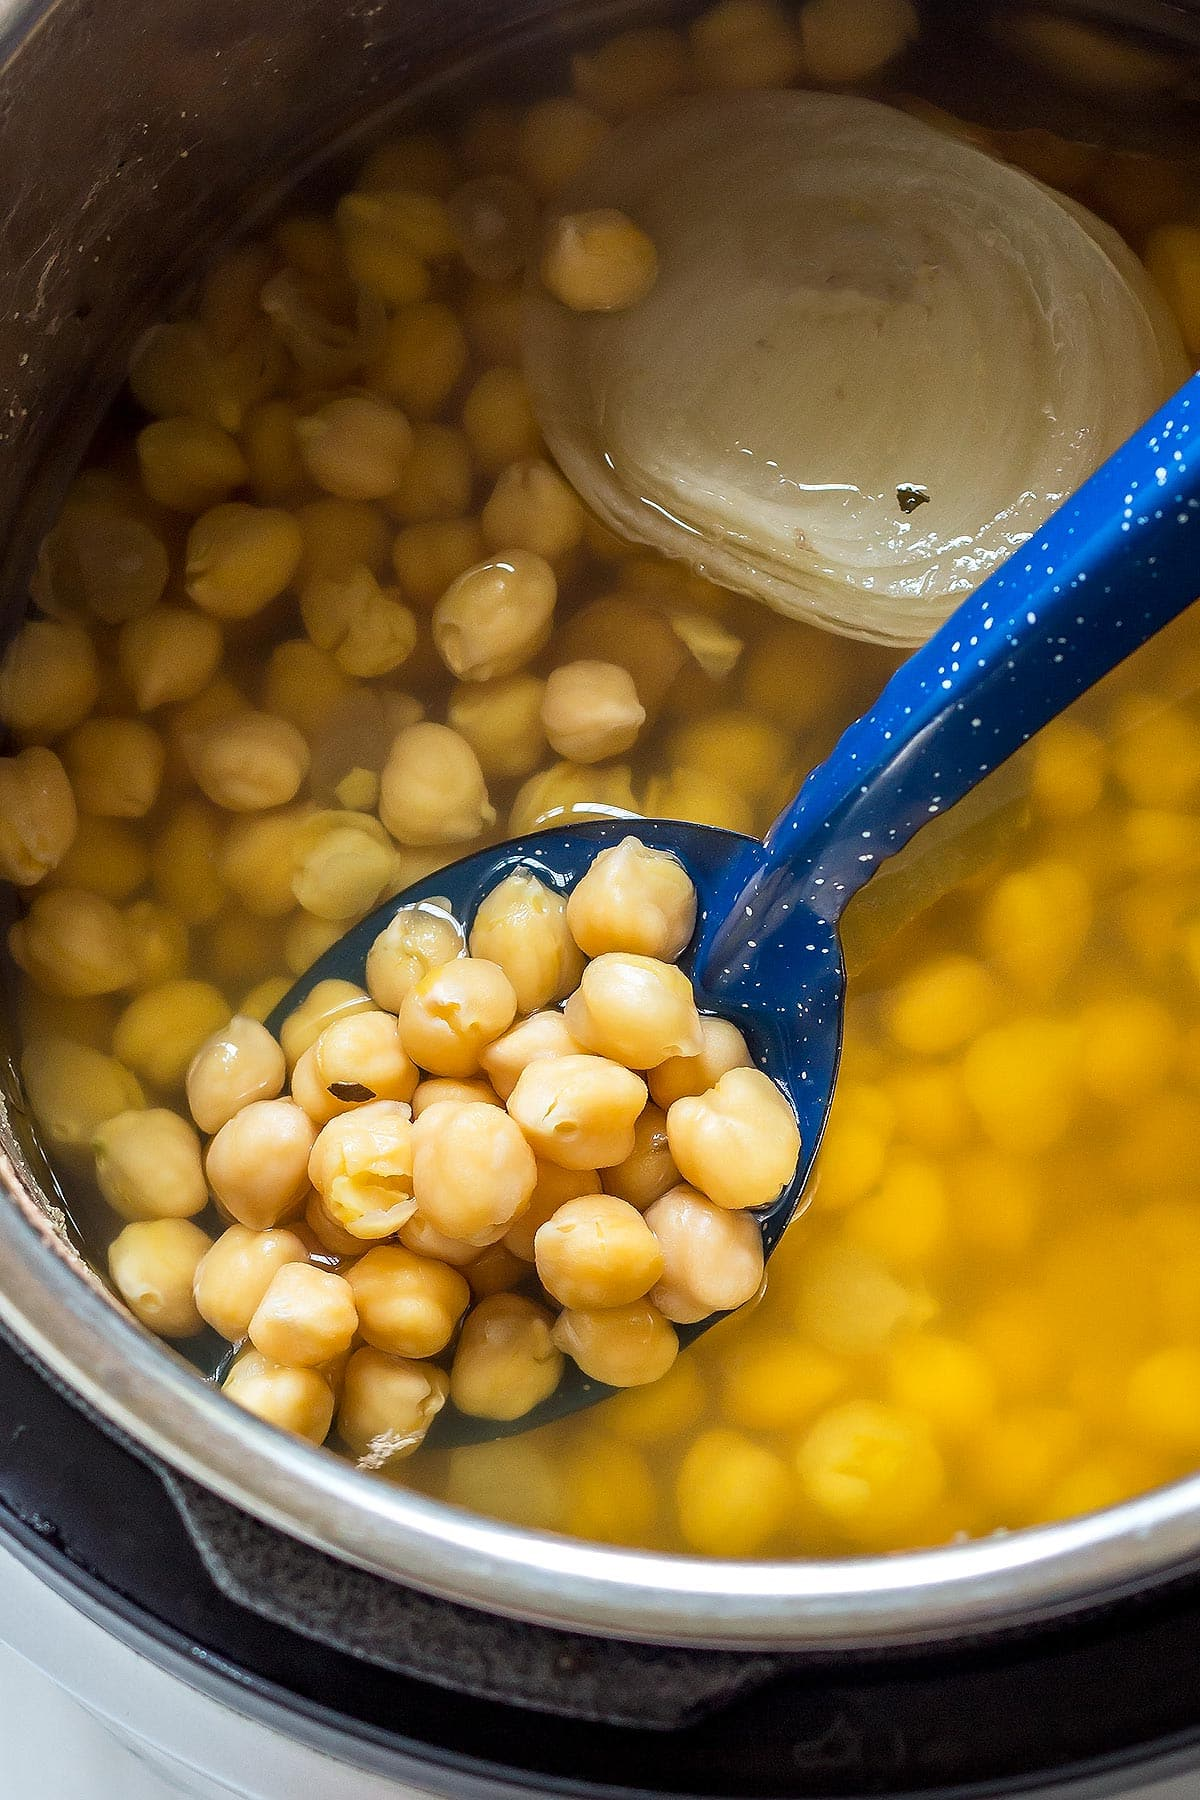 Cooked Chickpeas in Instant Pot